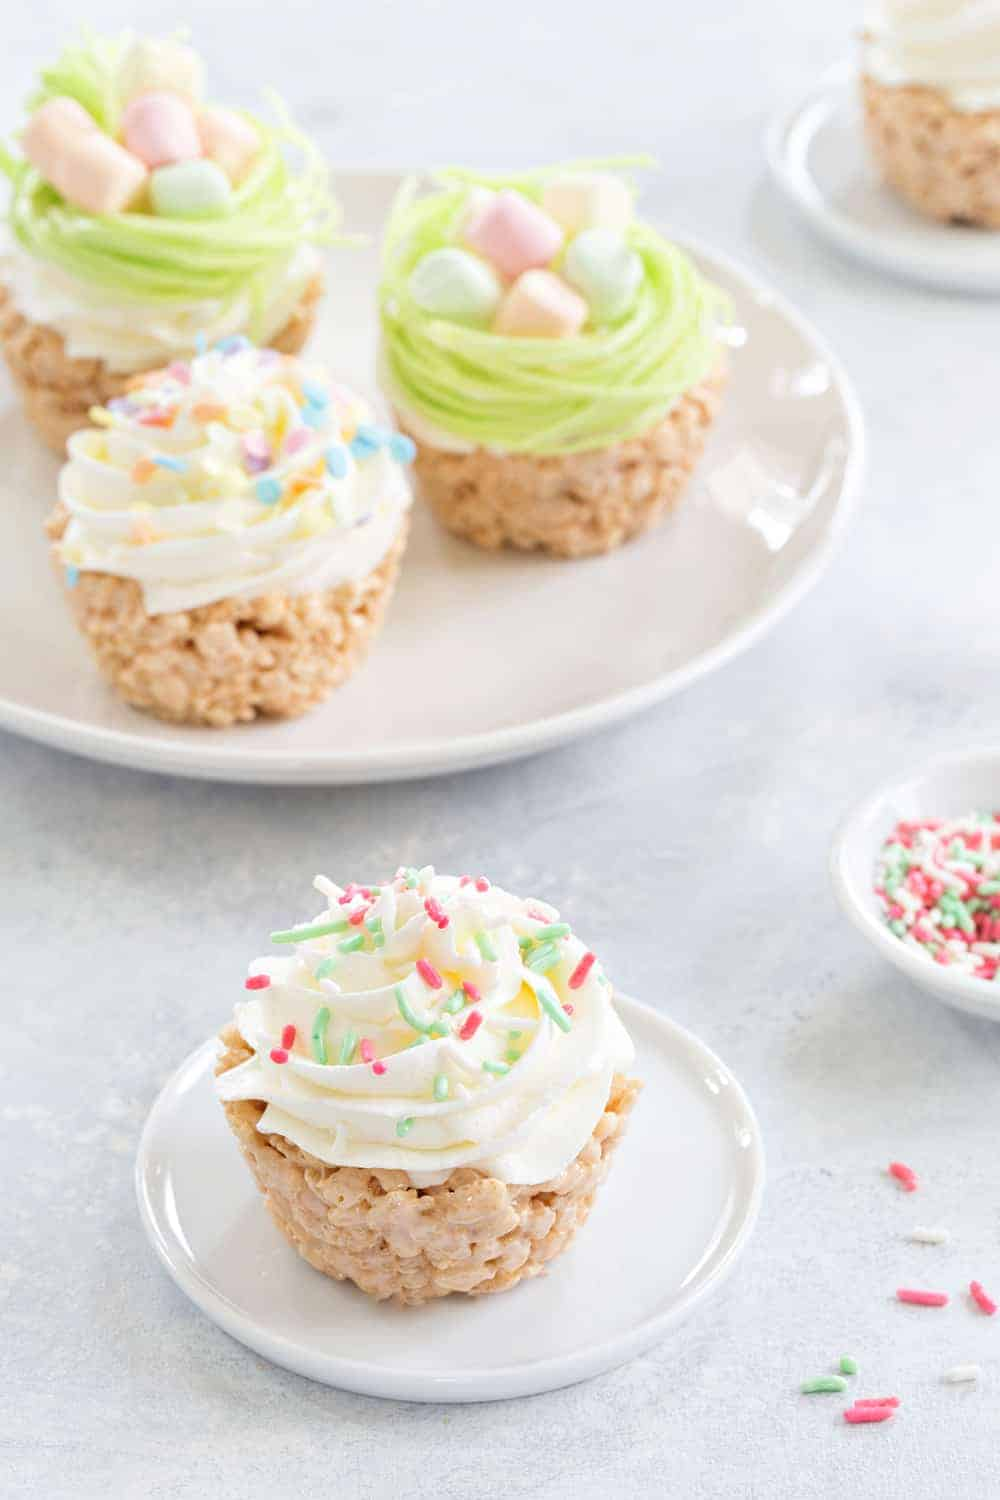 Marshmallow Treat Cupcakes are an adorable and delicious addition to any spring party! So fun and festive!